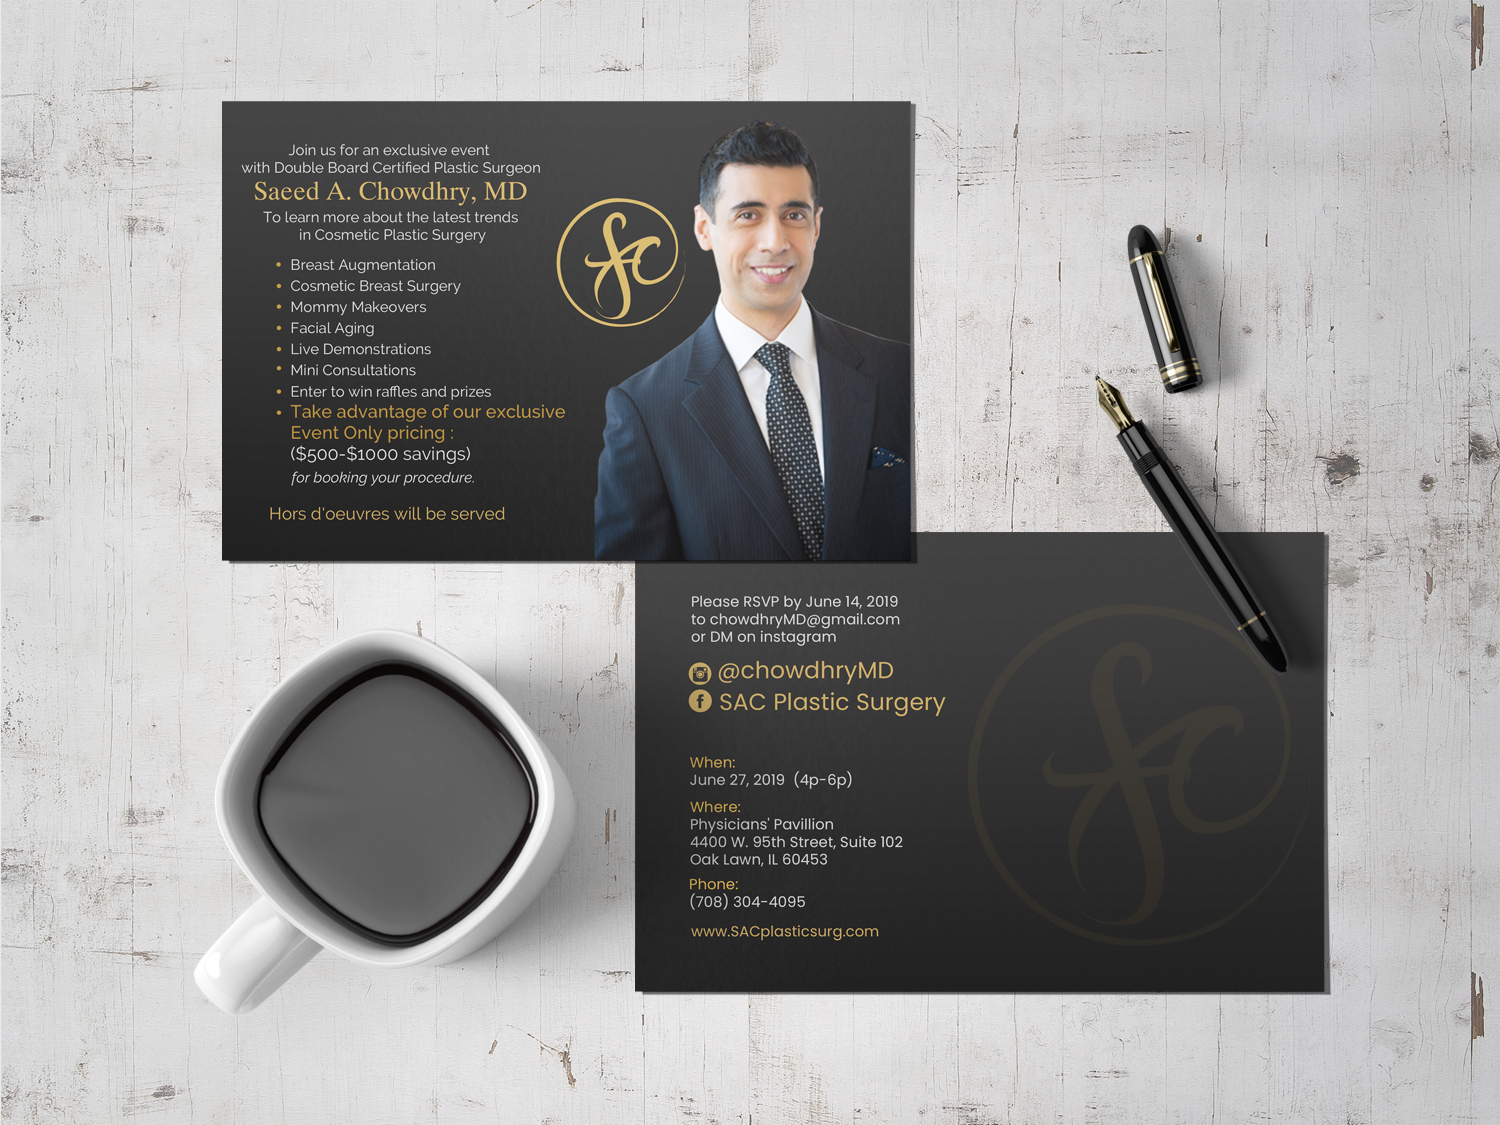 Postcard/Flyer design for Plastic Surgery Practice Open House - Medical